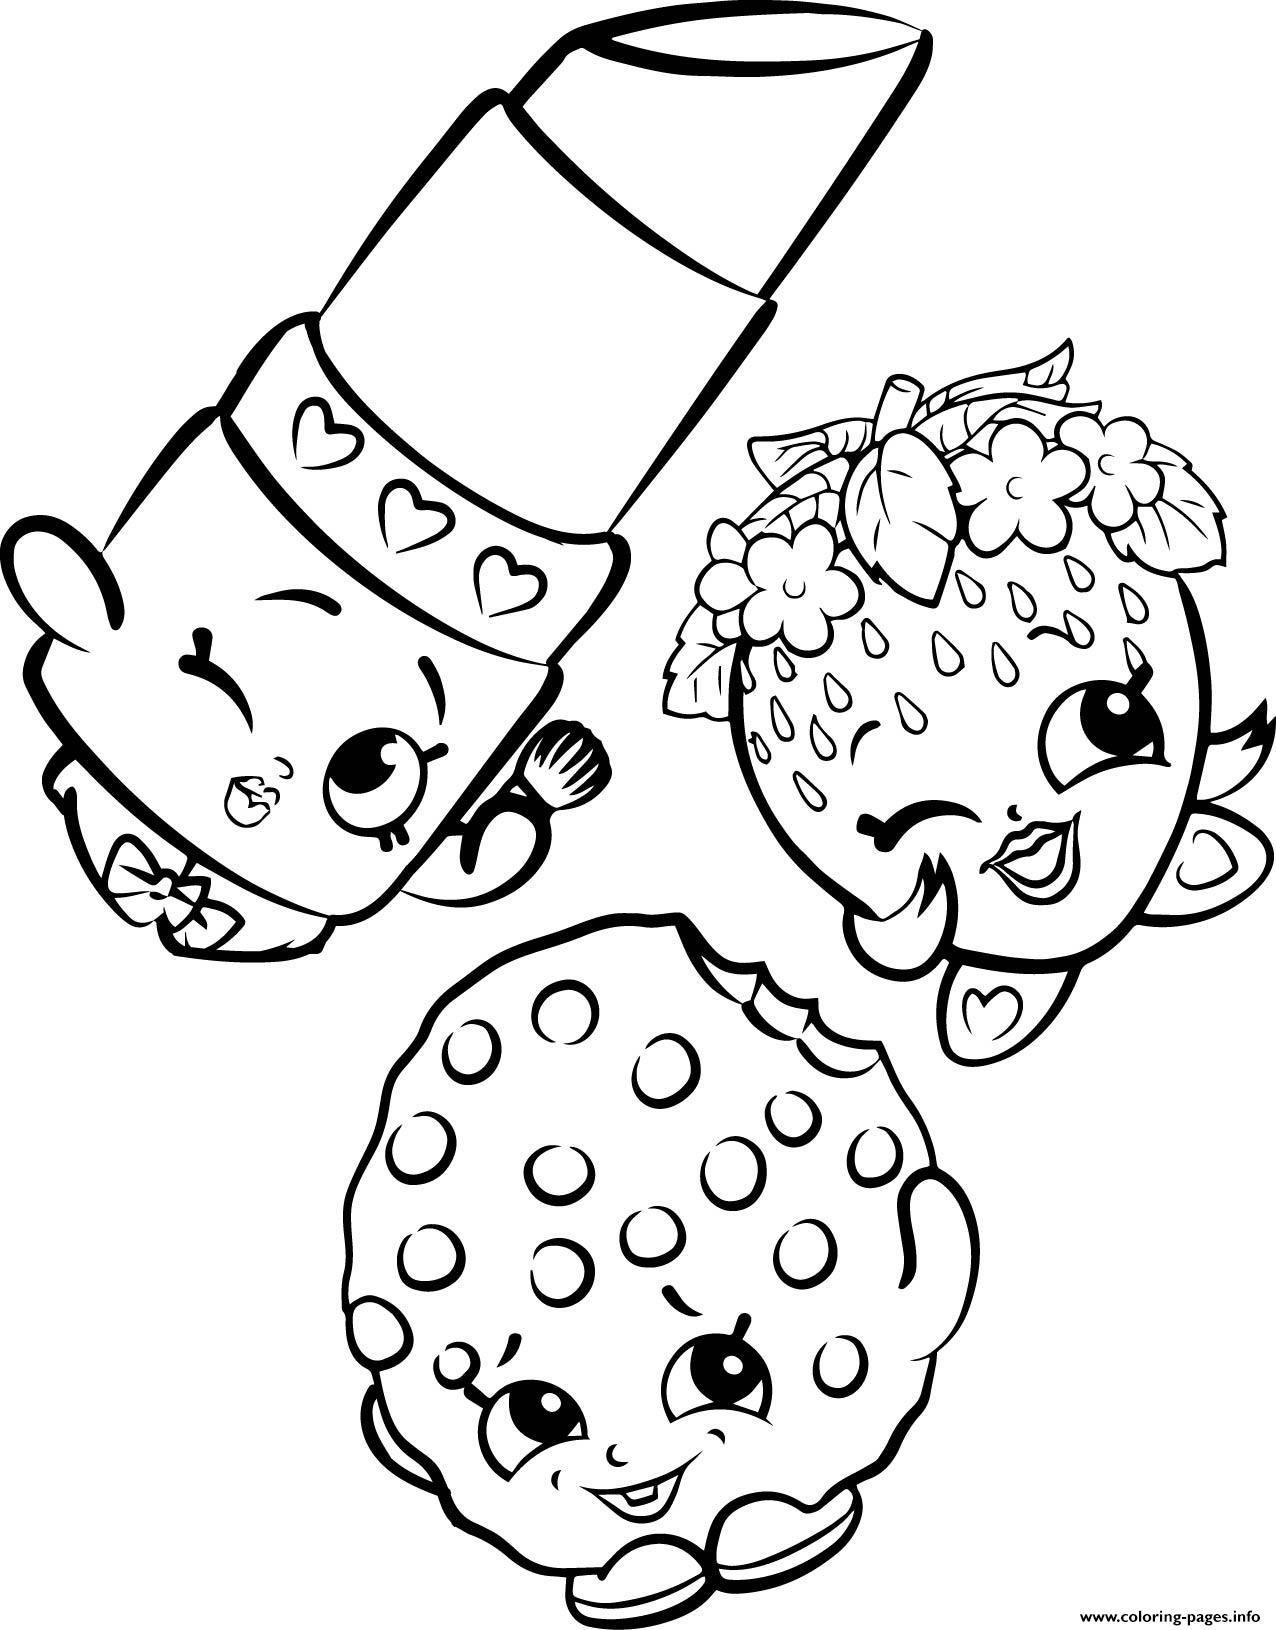 Free Shopkins Strawberry Lipstick Cookie Coloring Pages